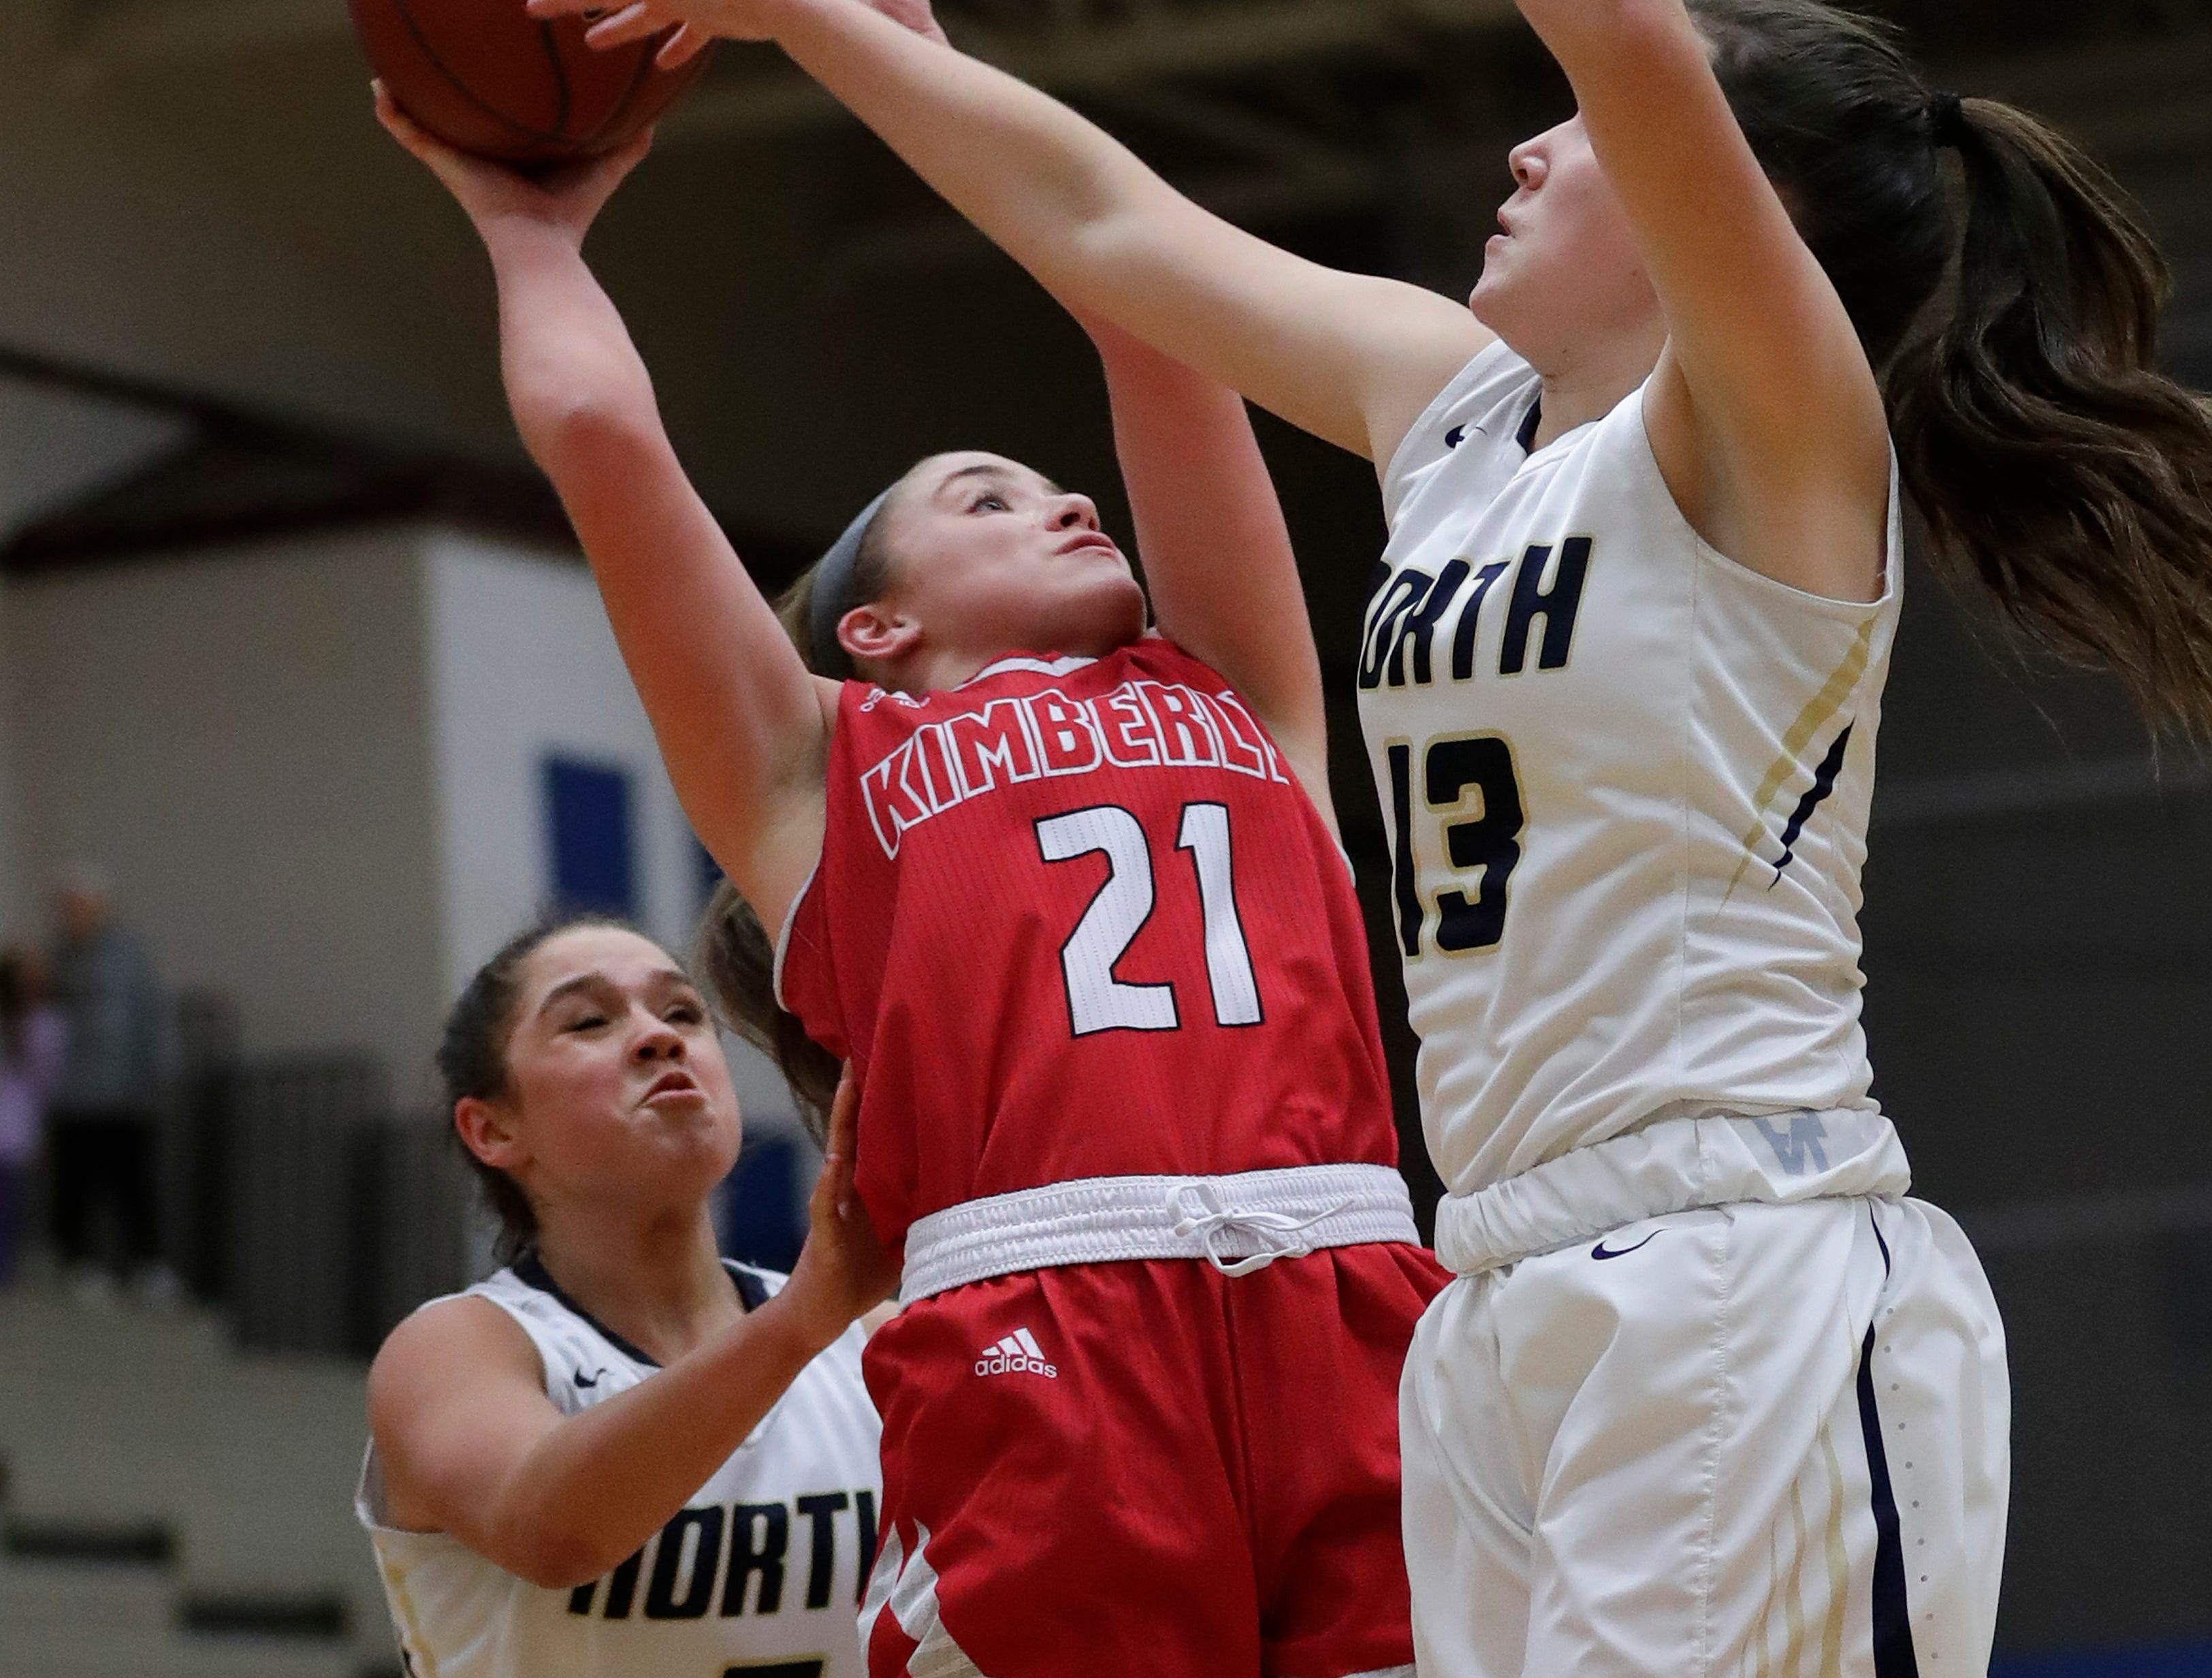 Kimberly High School's Kate Karch (21) puts up a shot against Appleton North High School's Niki Van Wyk (5) and Natalie Dvoracek (13) during their girls basketball game Tuesday, January 8, 2019, in Appleton, Wis. Dan Powers/USA TODAY NETWORK-Wisconsin